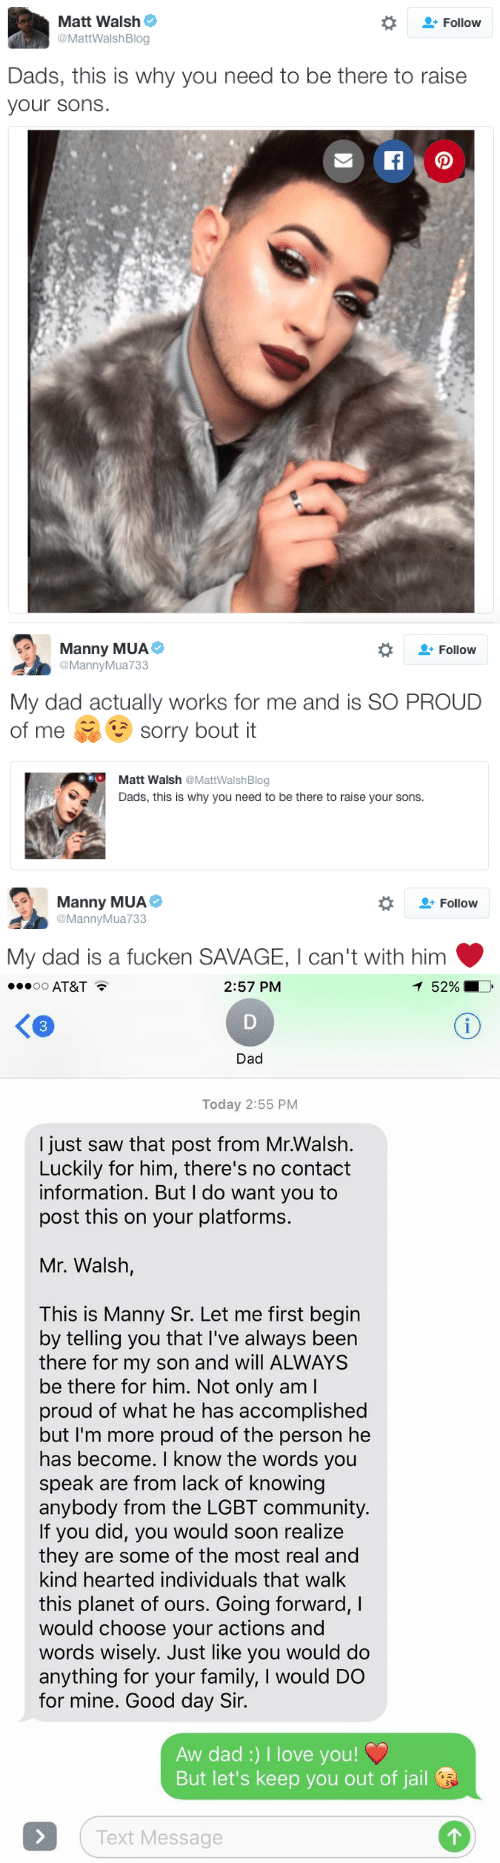 Community, Dad, and Family: Matt Walsh  # Follow  MattWalshBlog  Dads, this is why you need to be there to raise  your sons.   Manny MUA  @MannyMua733  Follow  My dad actually works for me and is SO PROUD  of me sorry bout it  Matt Walsh @MattWalshBlog  Dads, this is why you need to be there to raise your sons.   Manny MUAe  @MannyMua733  *  Follow  My dad is a fucken SAVAGE, I can't with him   AT&T  2:57 PM  52%  K3  Dad  Today 2:55 PM  I just saw that post from Mr.Walsh.  Luckily for him, there's no contact  information. But I do want you to  post this on your platforms.  Mr. Walsh,  This is Manny Sr. Let me first begin  by telling you that I've always been  there for my son and will ALWAYS  be there for him. Not only aml  proud of what he has accomplished  but I'm more proud of the person he  has become. I know the words you  speak are from lack of knowing  anybody from the LGBT community.  If you did, you would soon realize  they are some of the most real and  kind hearted individuals that walk  this planet of ours. Going forward, I  would choose your actions and  words wisely. Just like you would do  anything for your family, I would DO  for mine. Good day Sir.  Aw dad:) I love you!  But let's keep you out of jail  Text Message